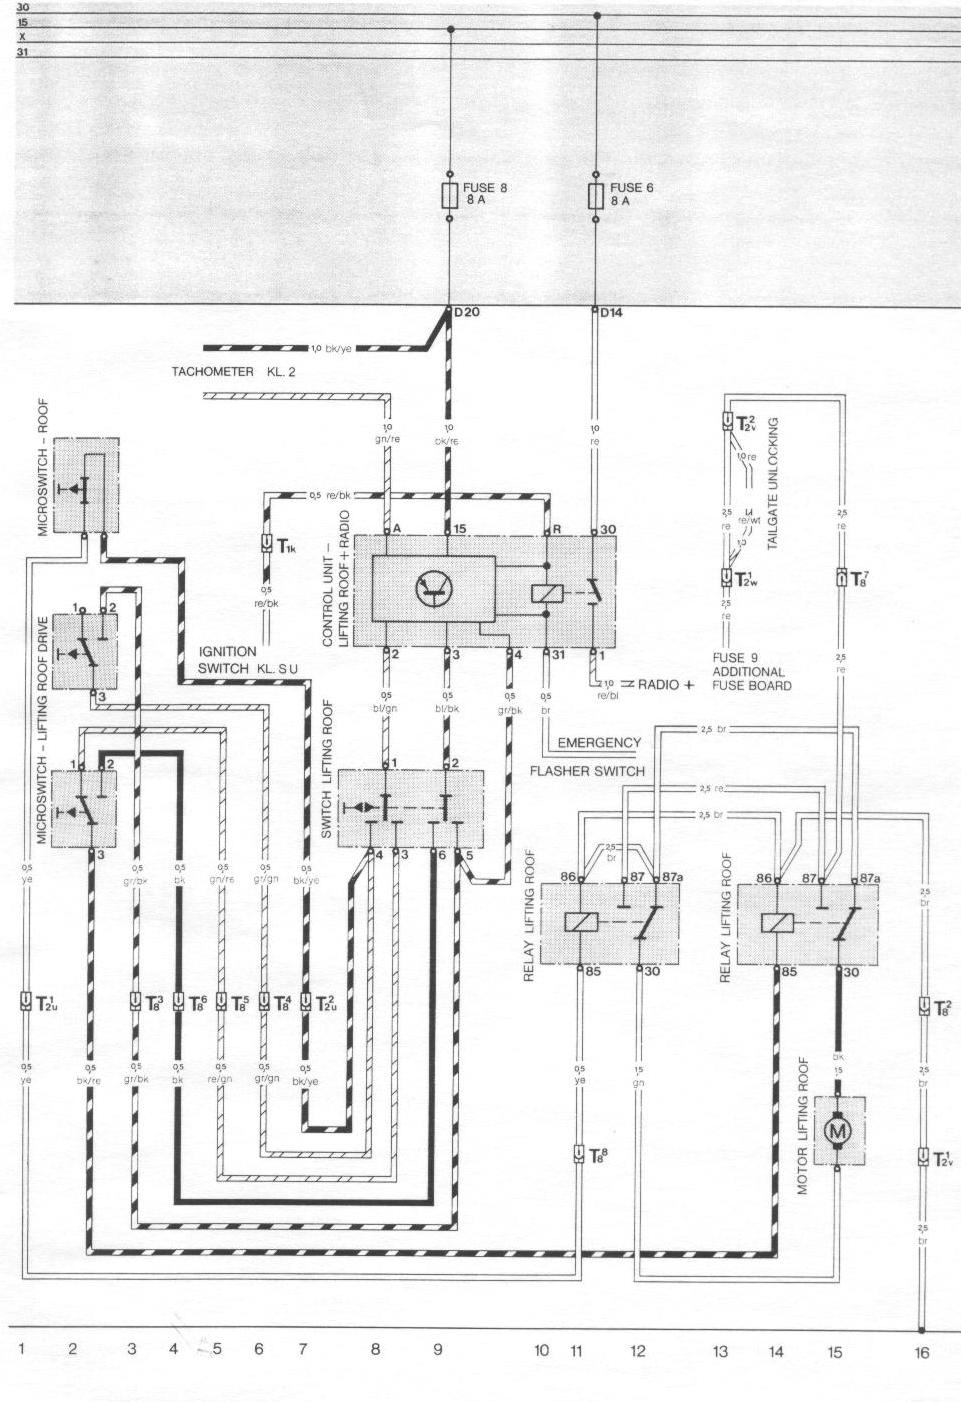 hight resolution of porsche 924 headlight wiring diagram simple wiring schema radio wiring harness diagram porsche headlight wiring harness diagram